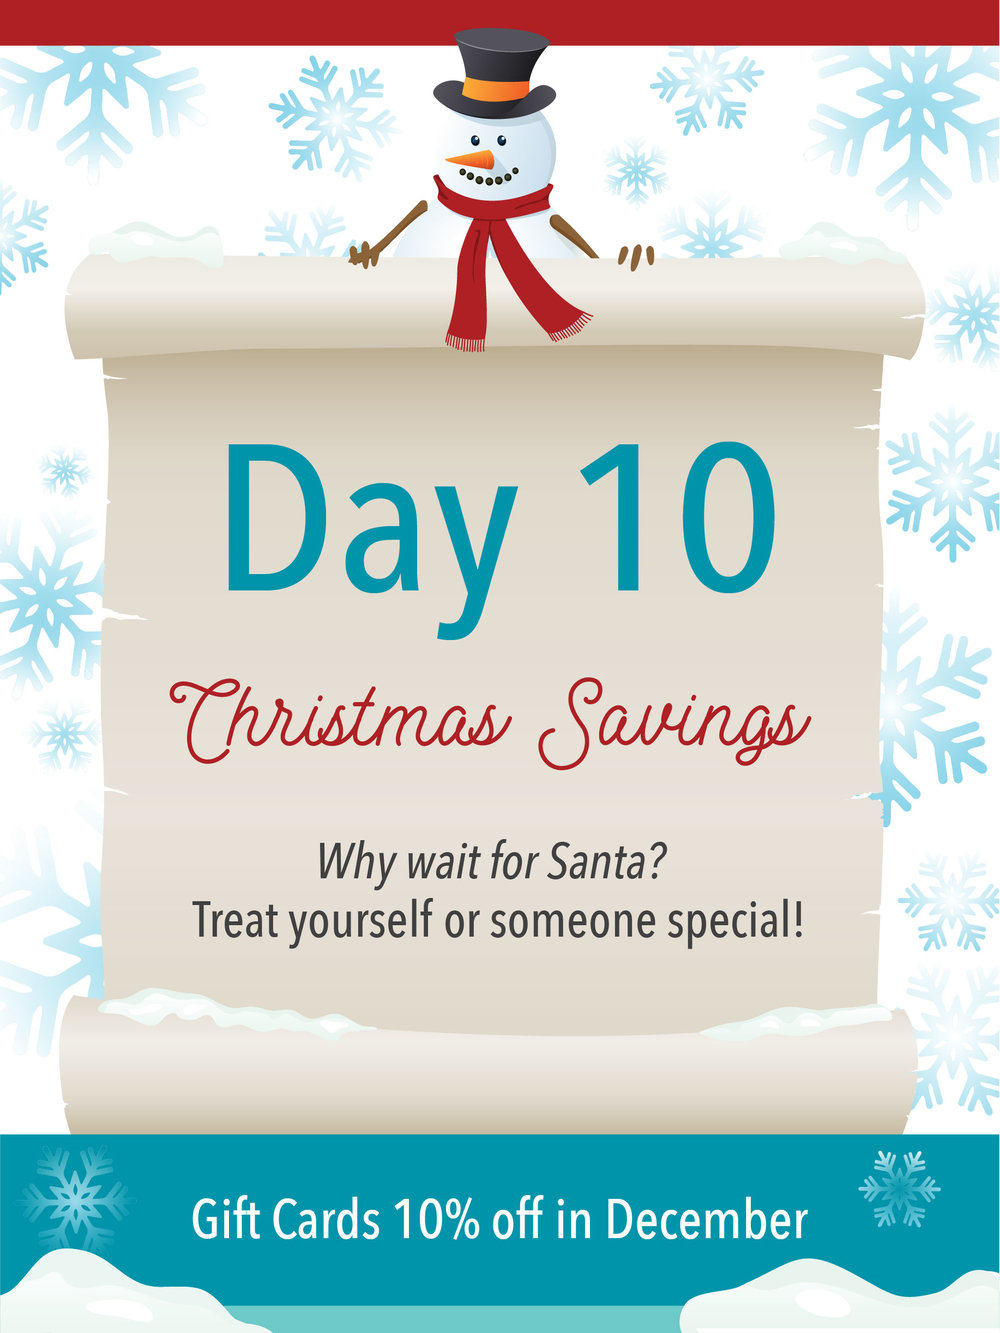 12 Days of Christmas Savings_2017-10.jpg